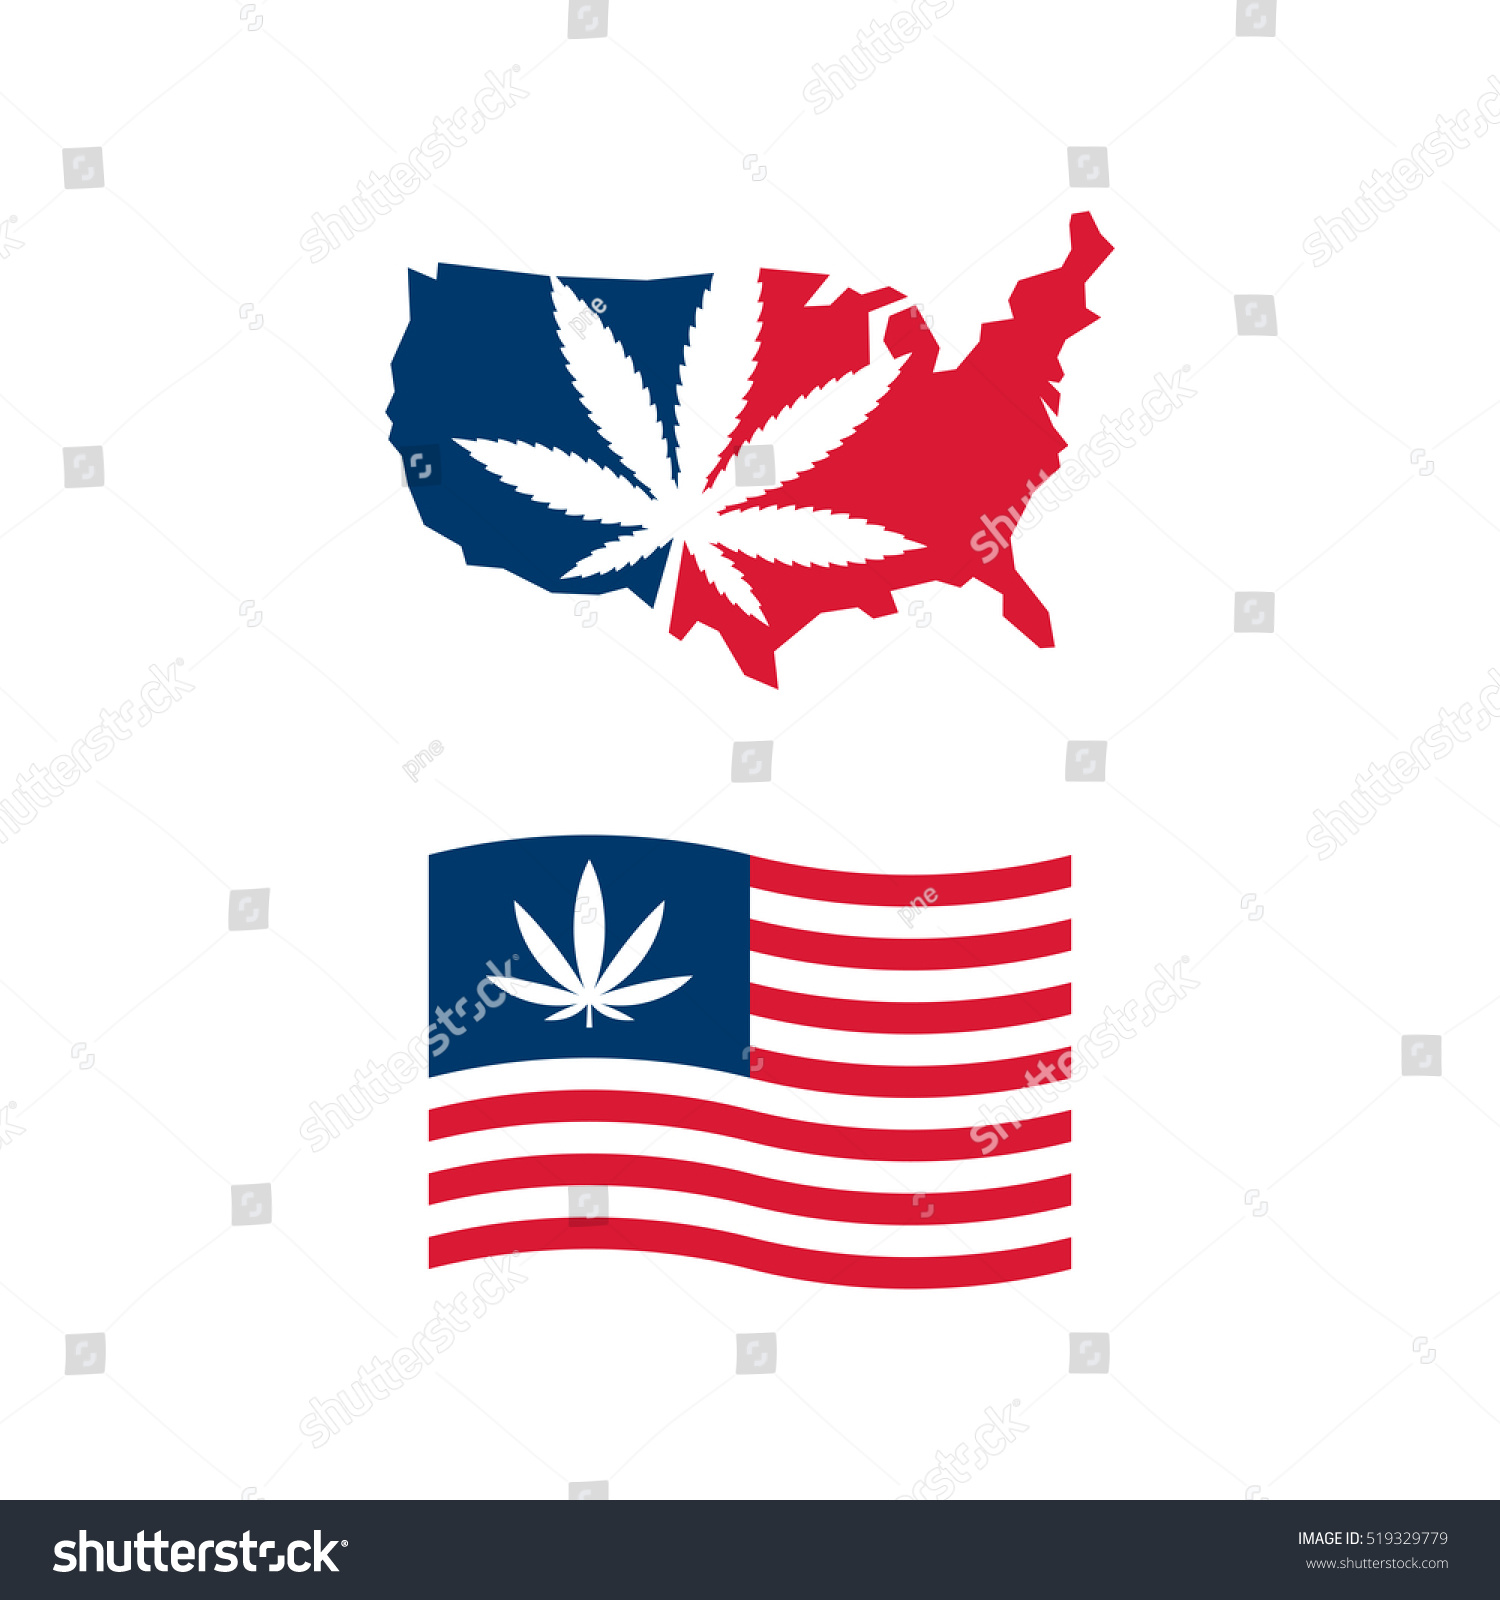 American Flag Us Map Cannabis Vector Stock Vector Royalty Free - American-flag-us-map